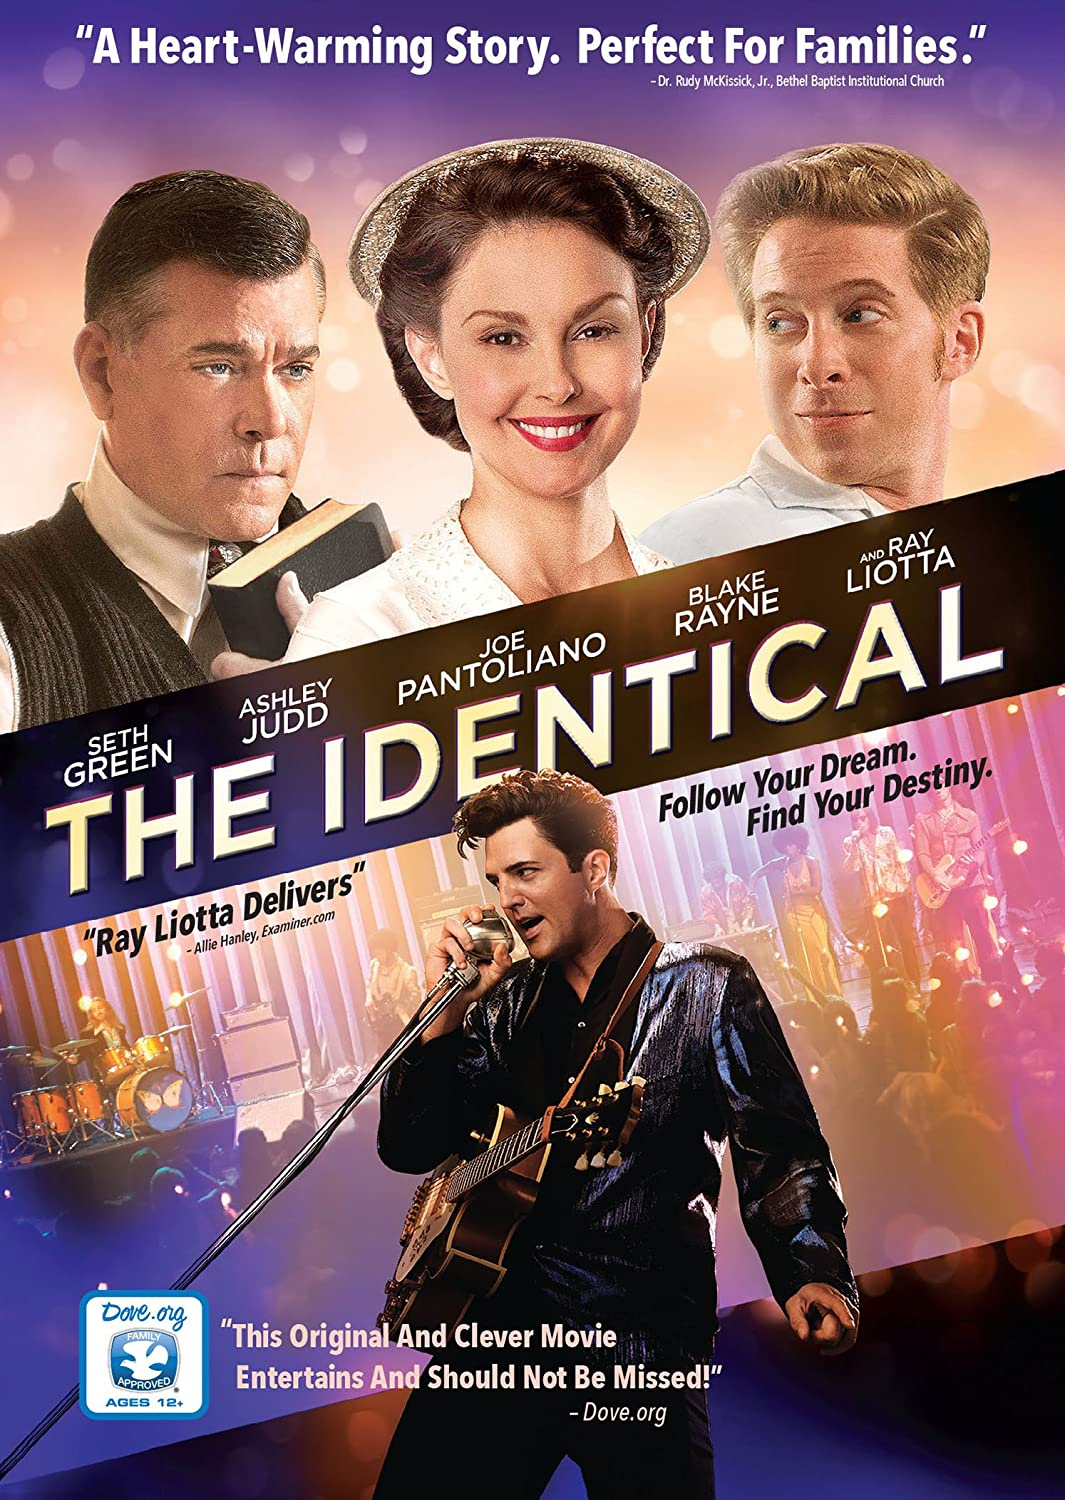 http://www.amazon.com/Identical-Ray-Liotta/dp/B00OHLR6QY/